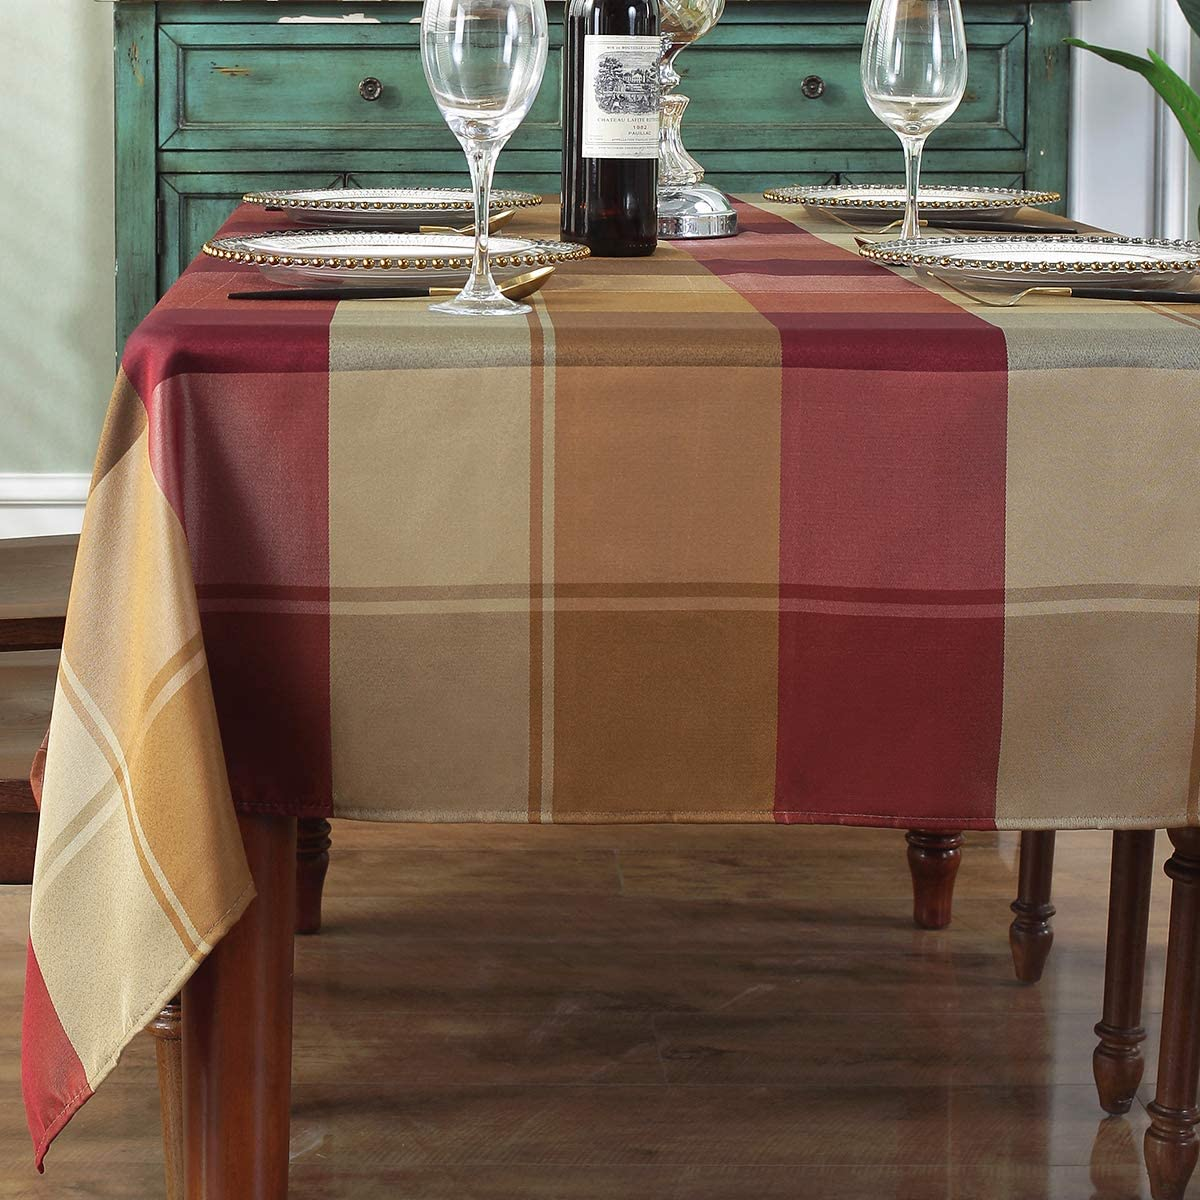 Rectangle Tablecloth Checkered Style Polyester Table Cloth Spillproof Dust-Proof Wrinkle Resistant Heavy Weight Table Cover for Kitchen Dinning Tabletop (Rectangle/Oblong, 52